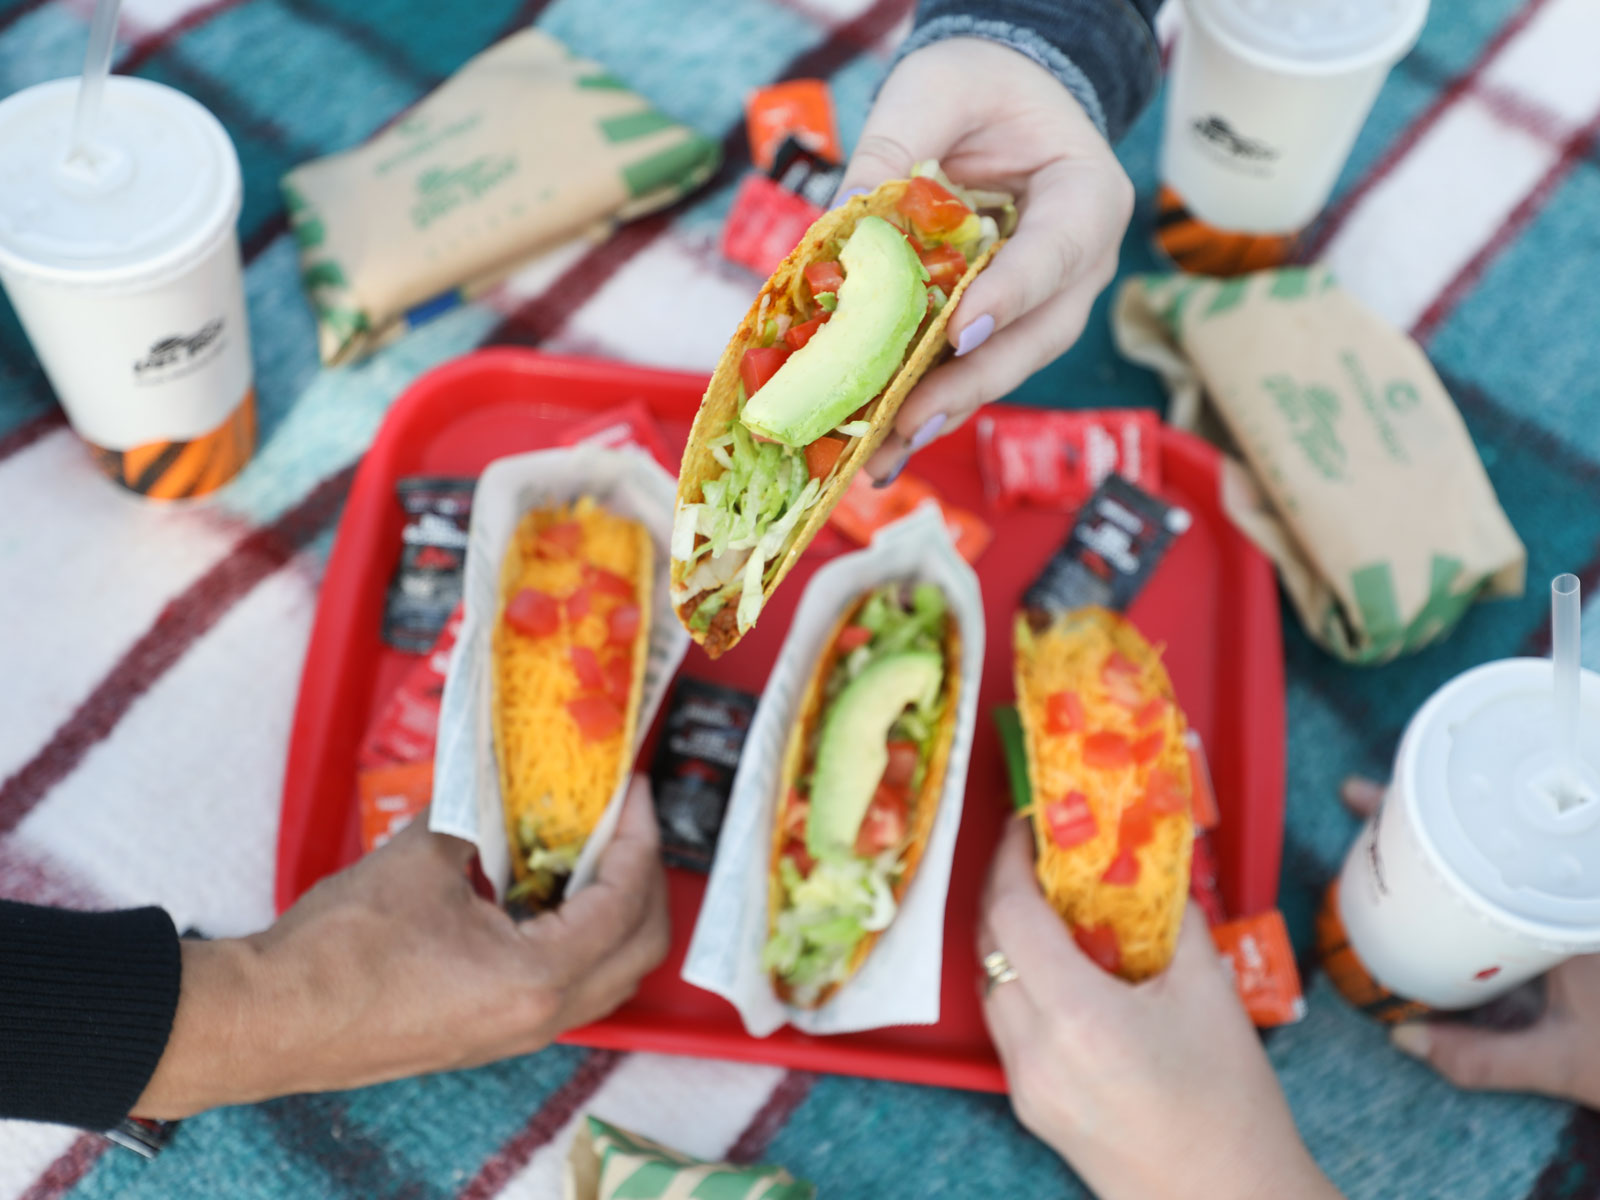 Del Taco to Add Beyond Meat Plant-Based Crumbles Nationwide